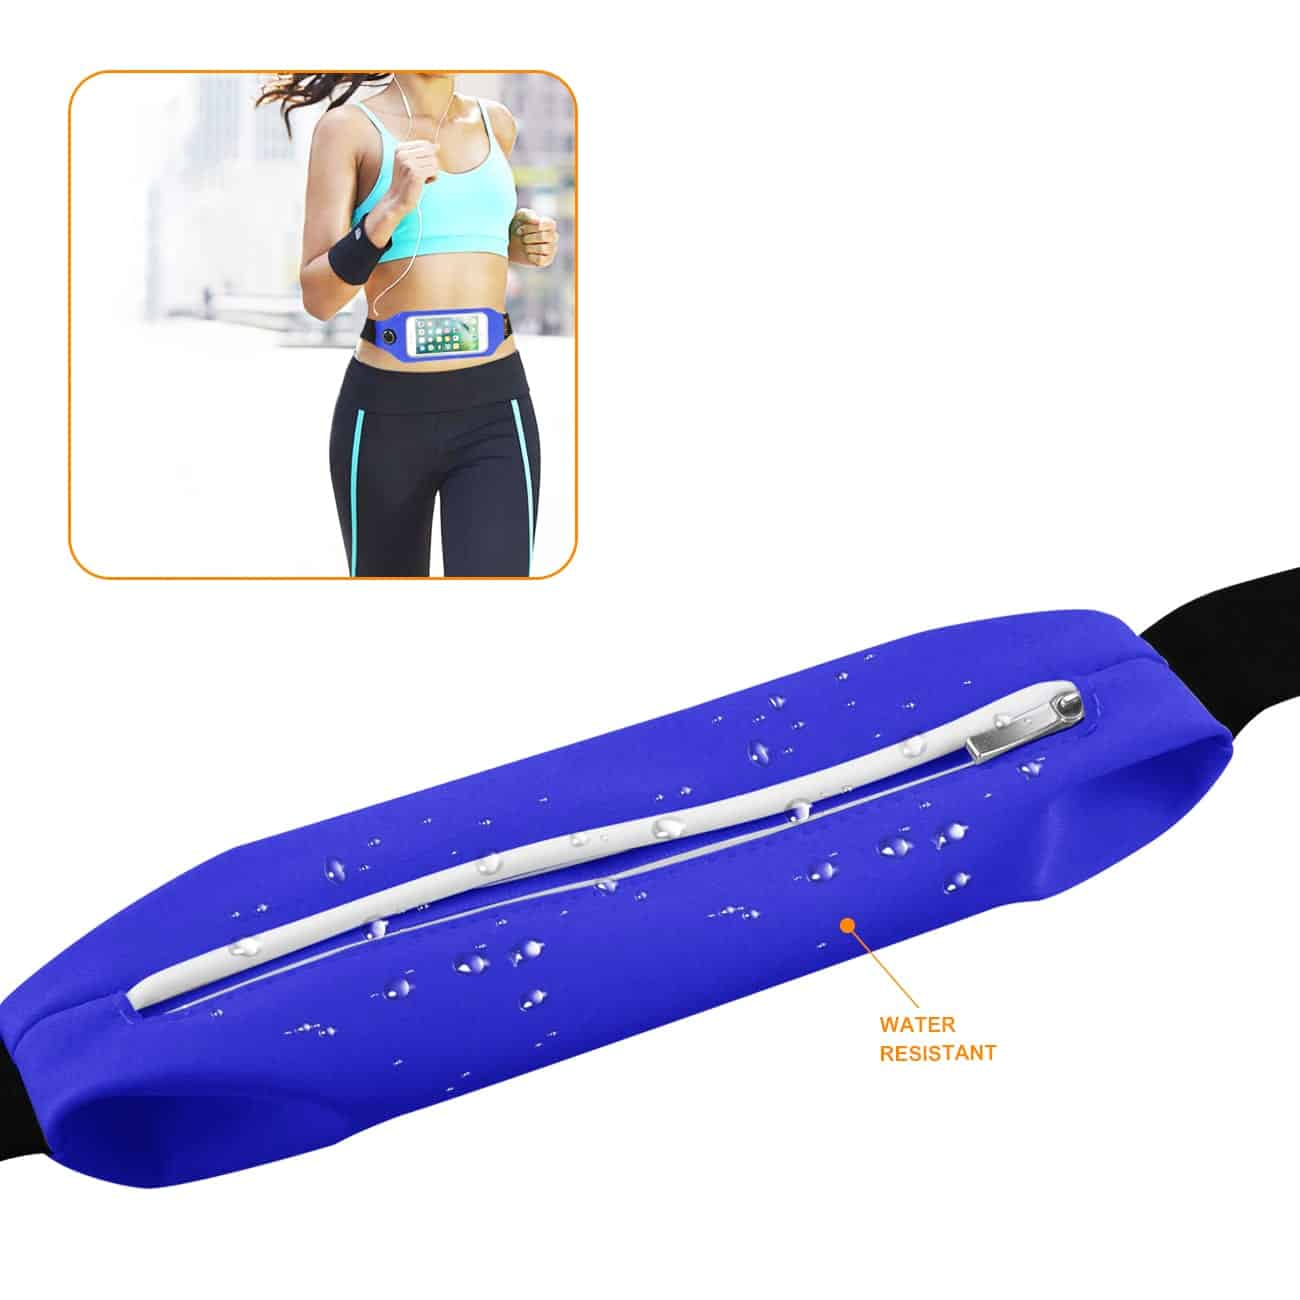 RUNNING SPORT BELT FOR IPHONE 7/ 6/ 6S OR 5 INCHES DEVICE WITH TWO POCKETS AND LED IN BLUE (5x5 INCHES)